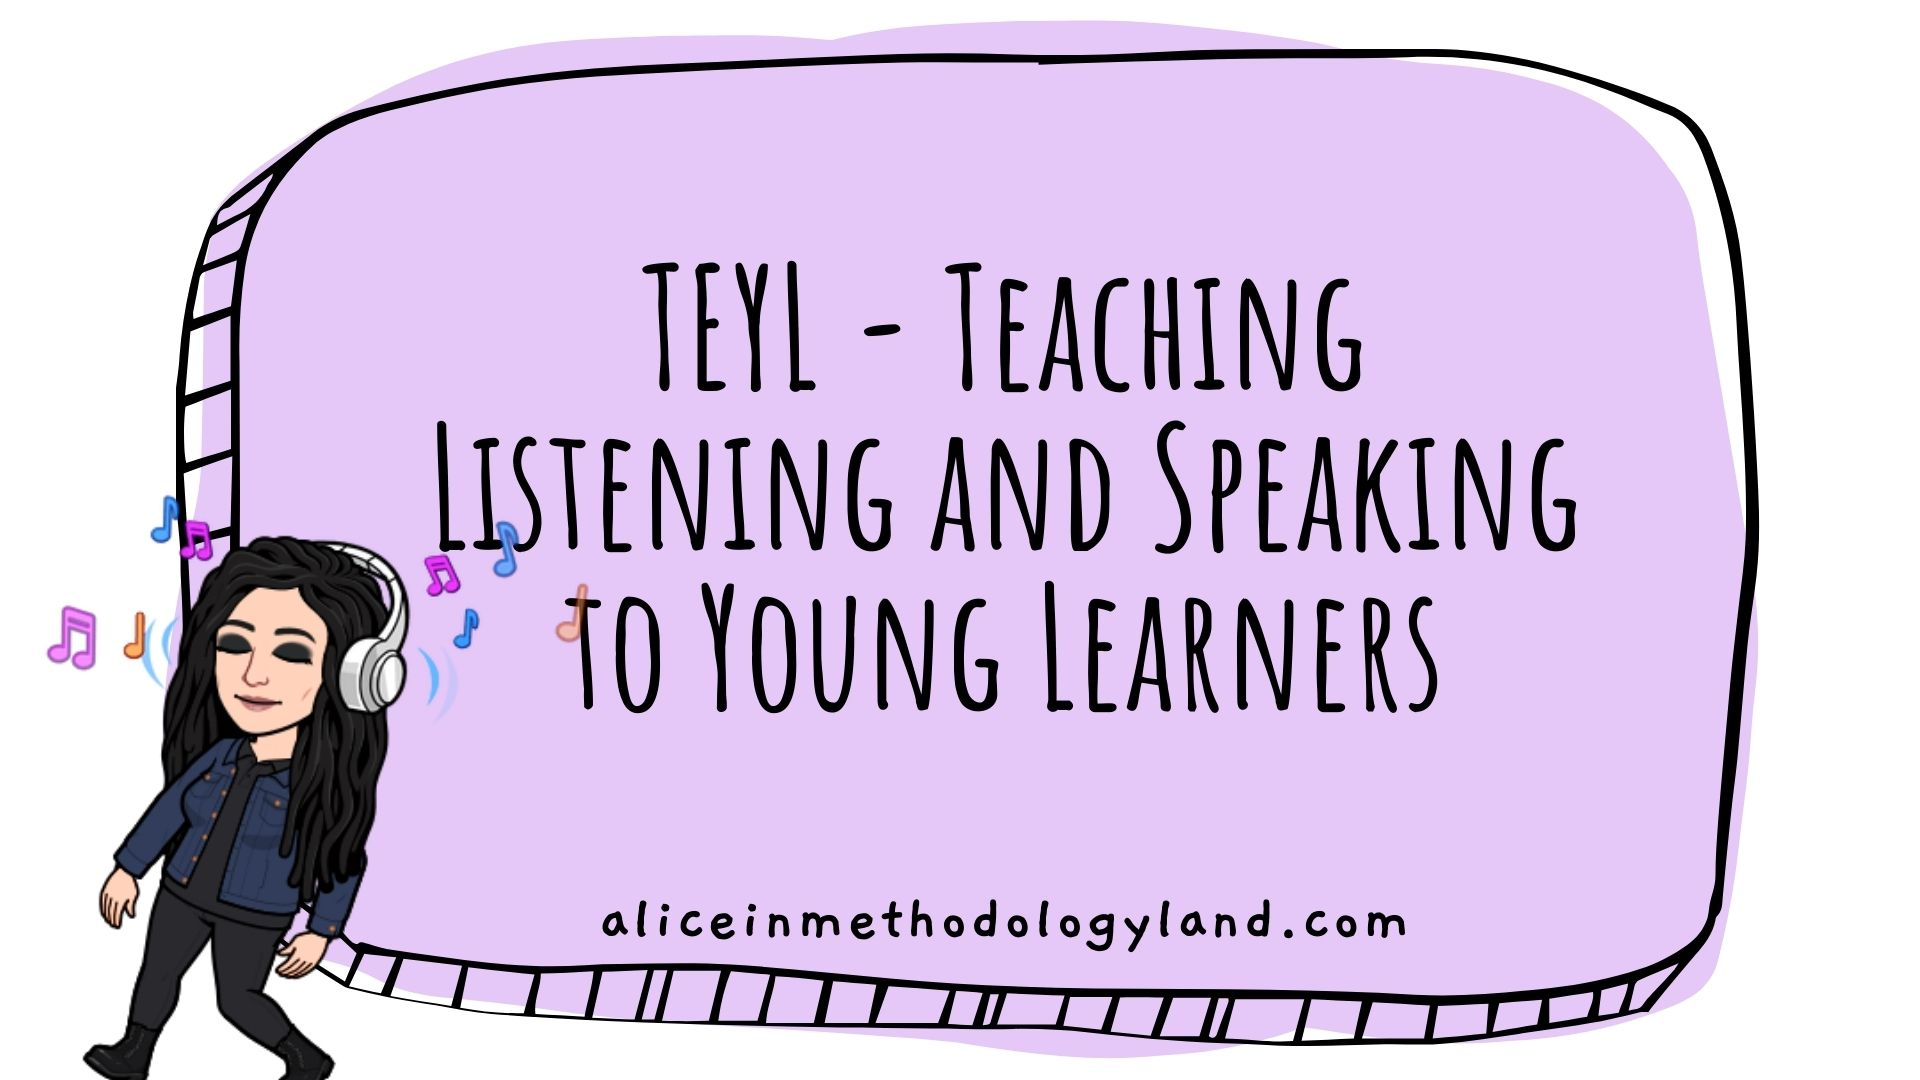 TEYL – Teaching Listening and Speaking to Young Learners